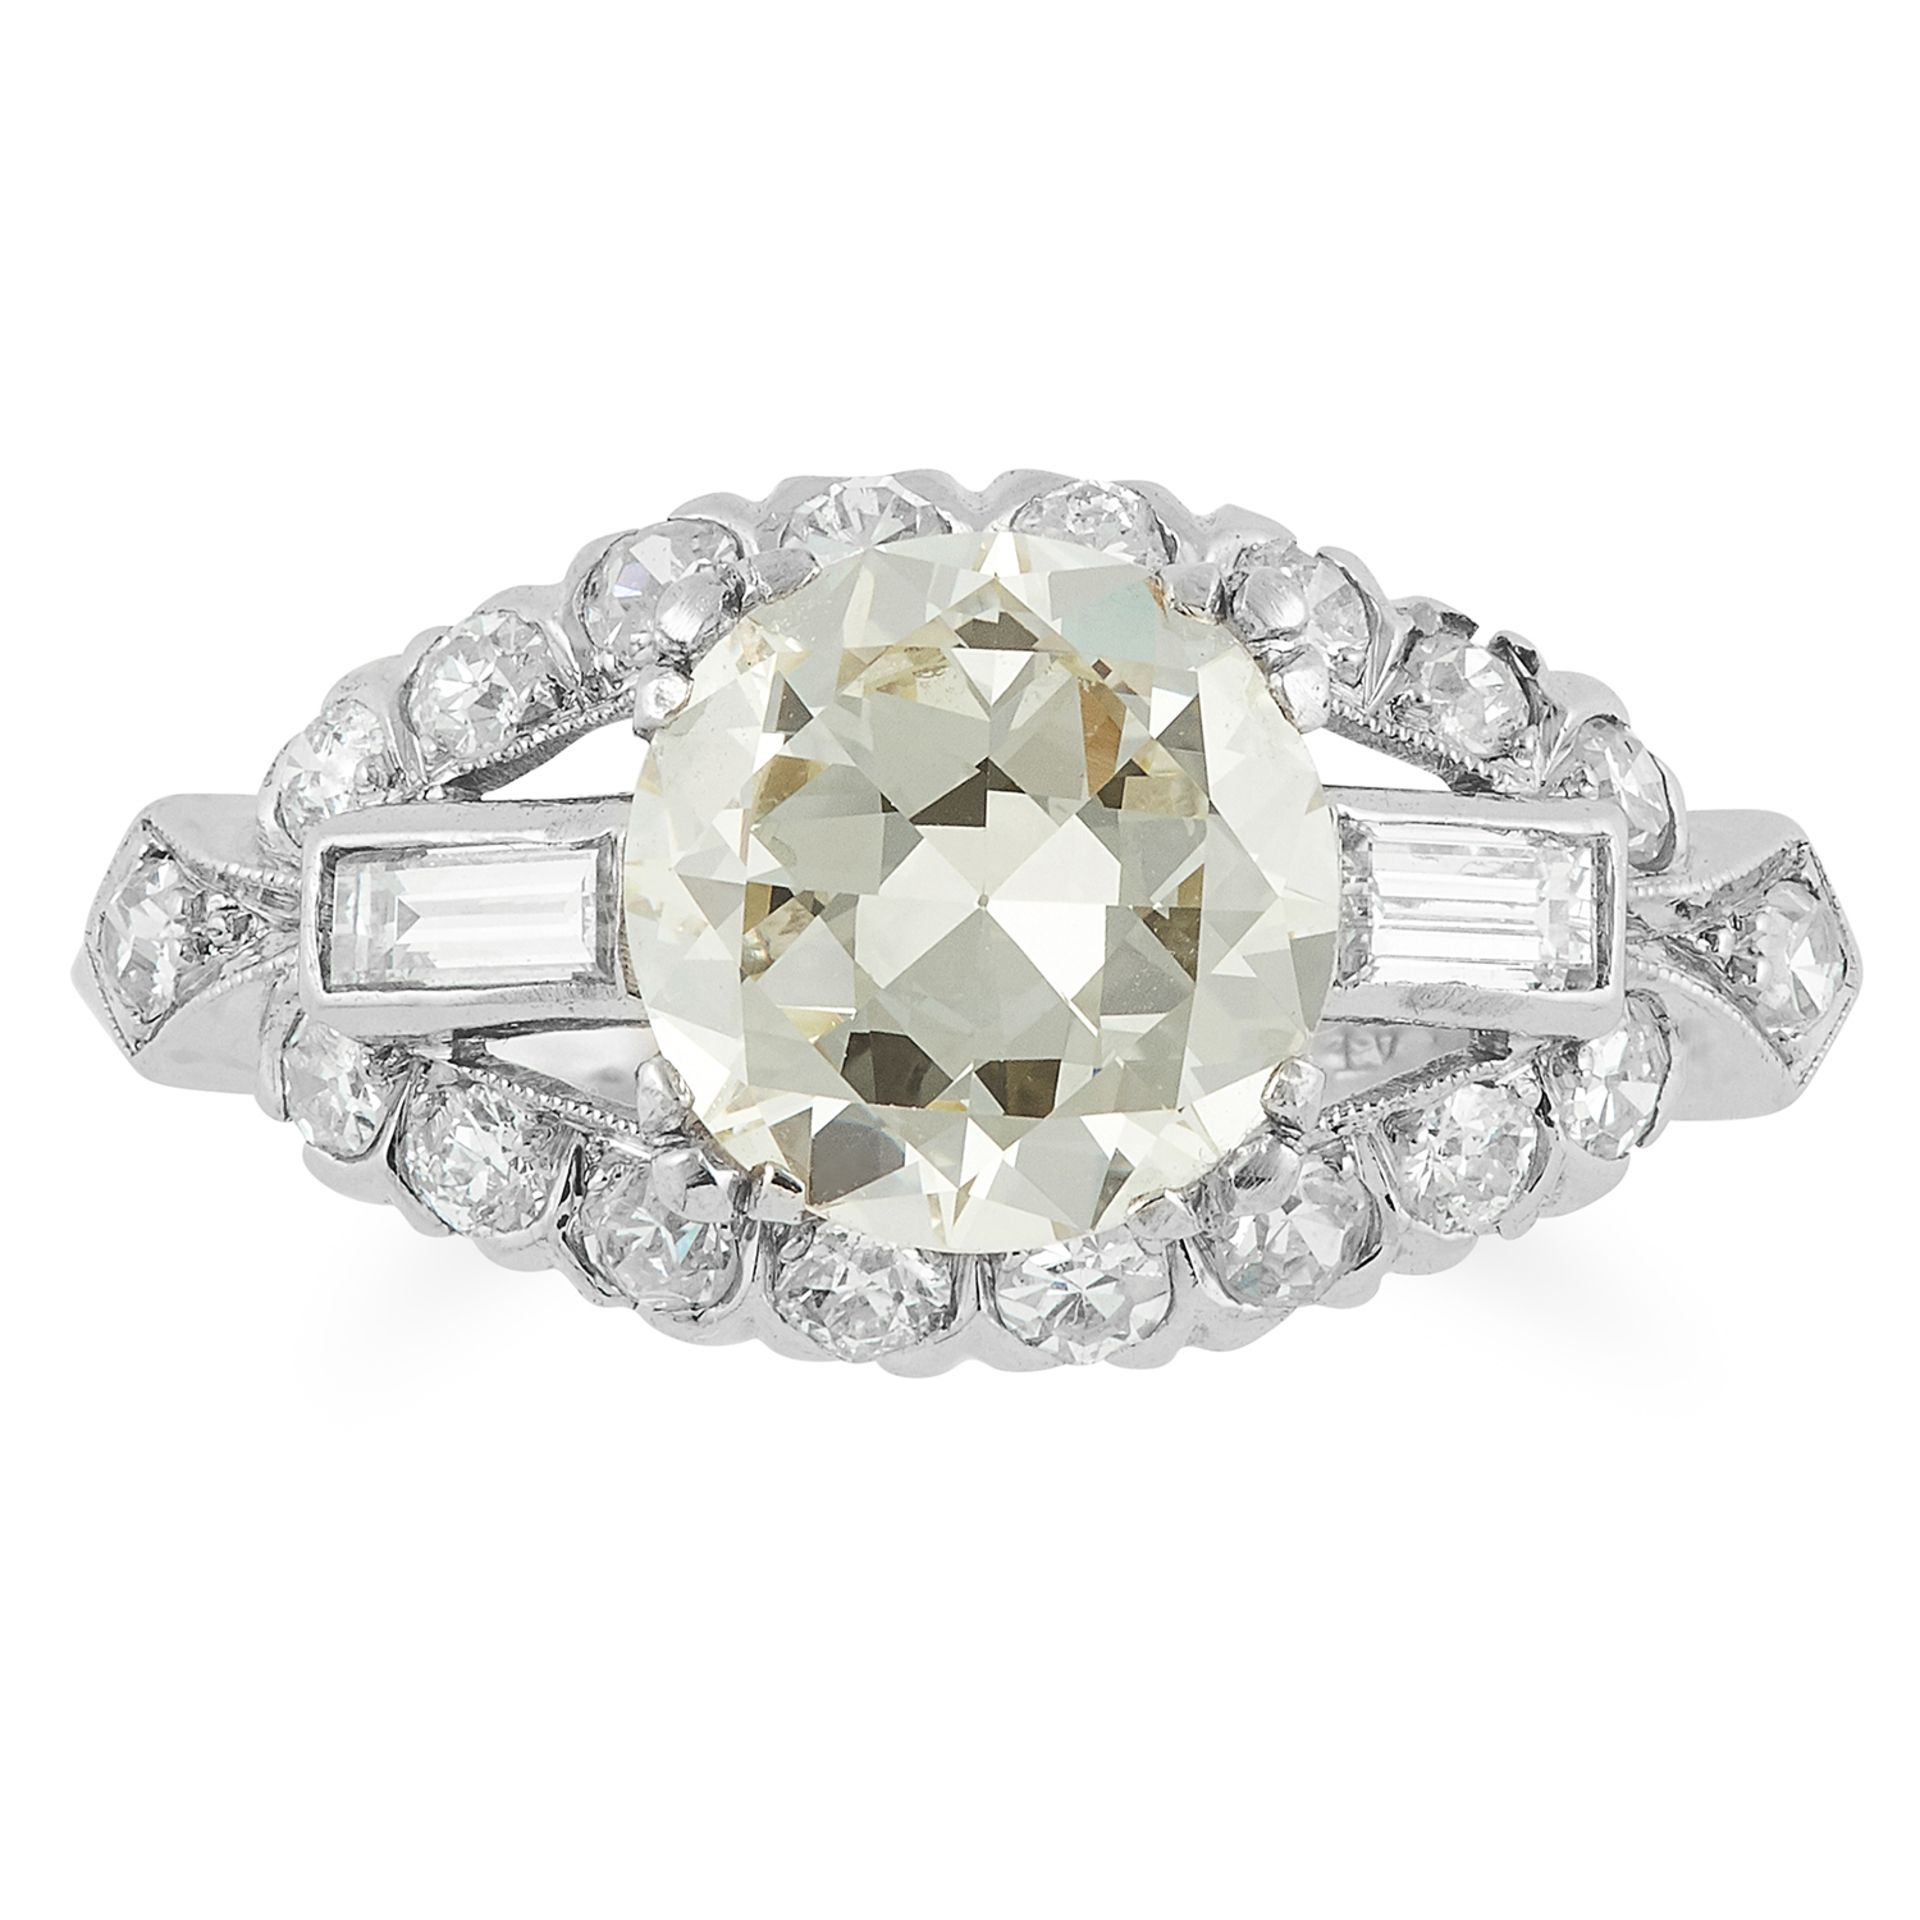 DIAMOND DRESS RING set with a transitional cut diamond in a border of baguette and round diamonds,